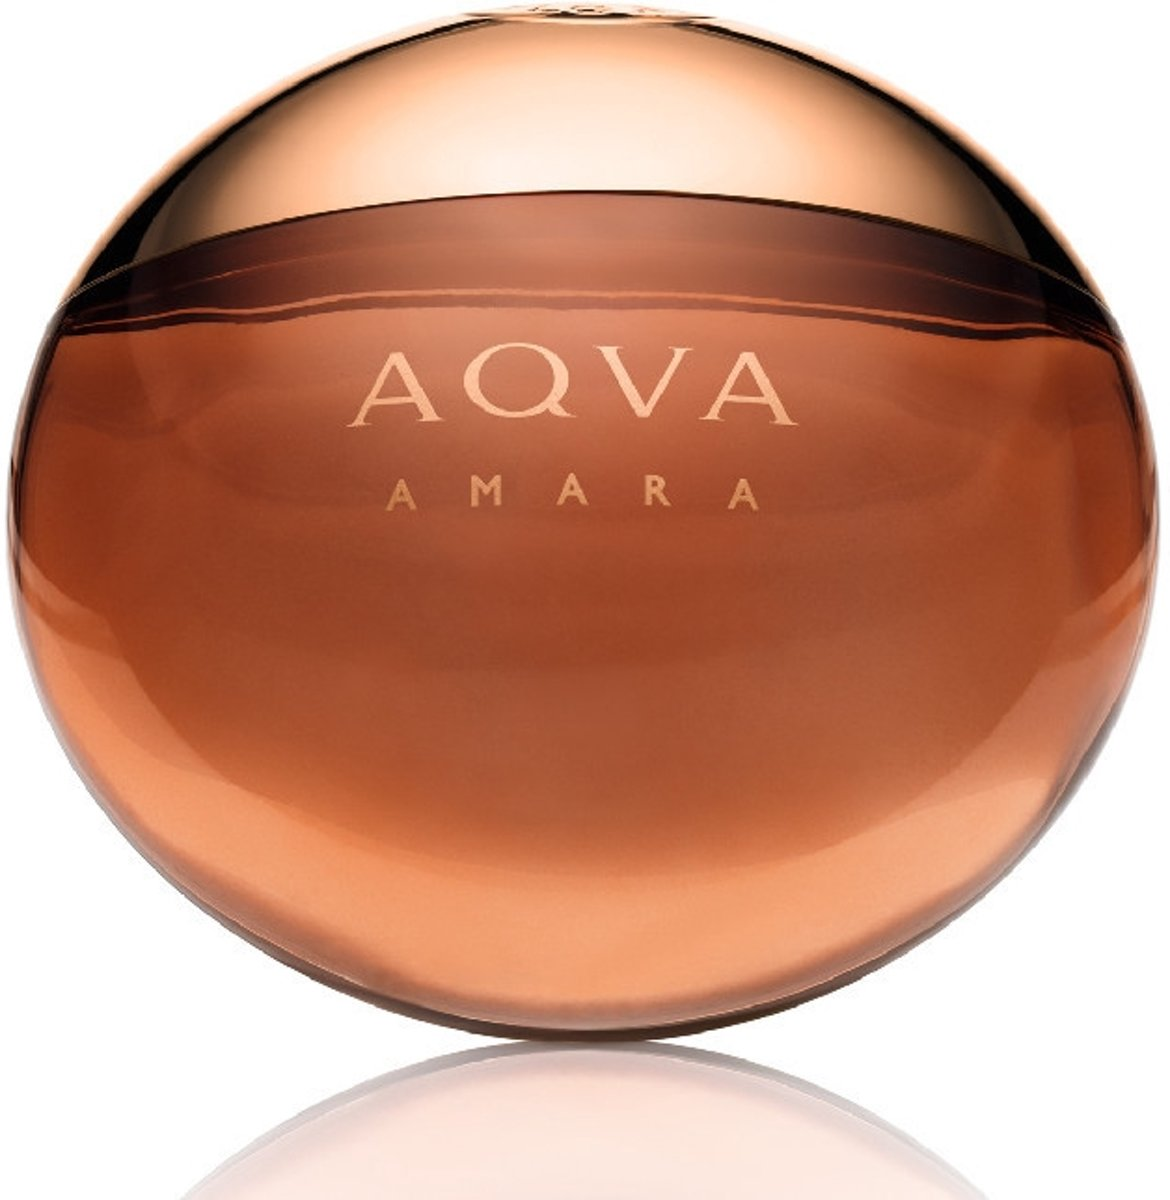 Bvlgari Aqva Amara for Men - 100 ml - Eau de Toilette kopen